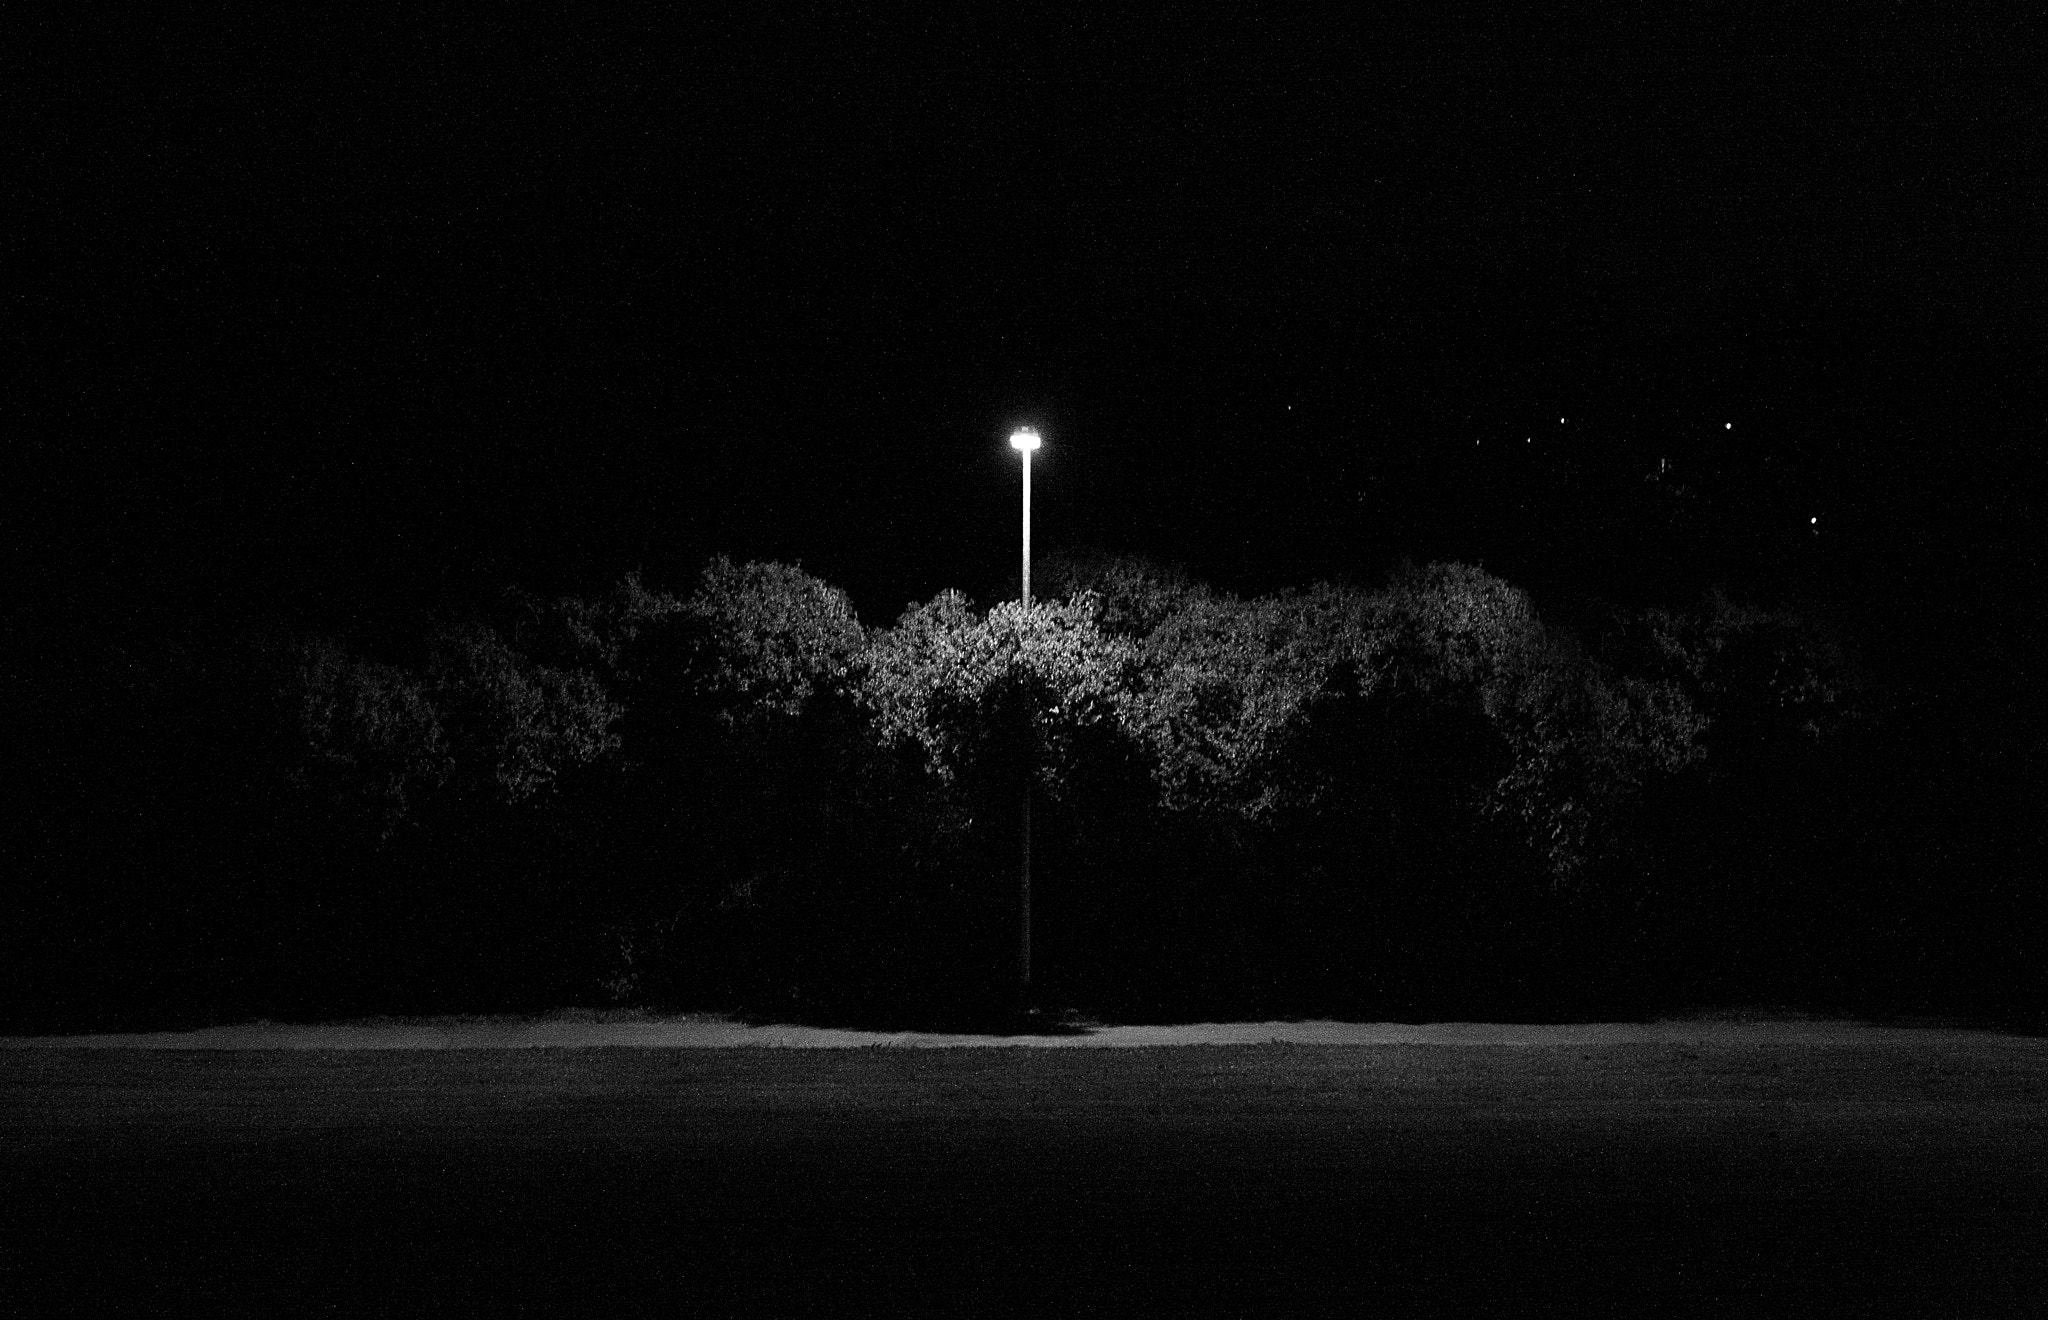 Photograph park.night by Vadim Tor on 500px